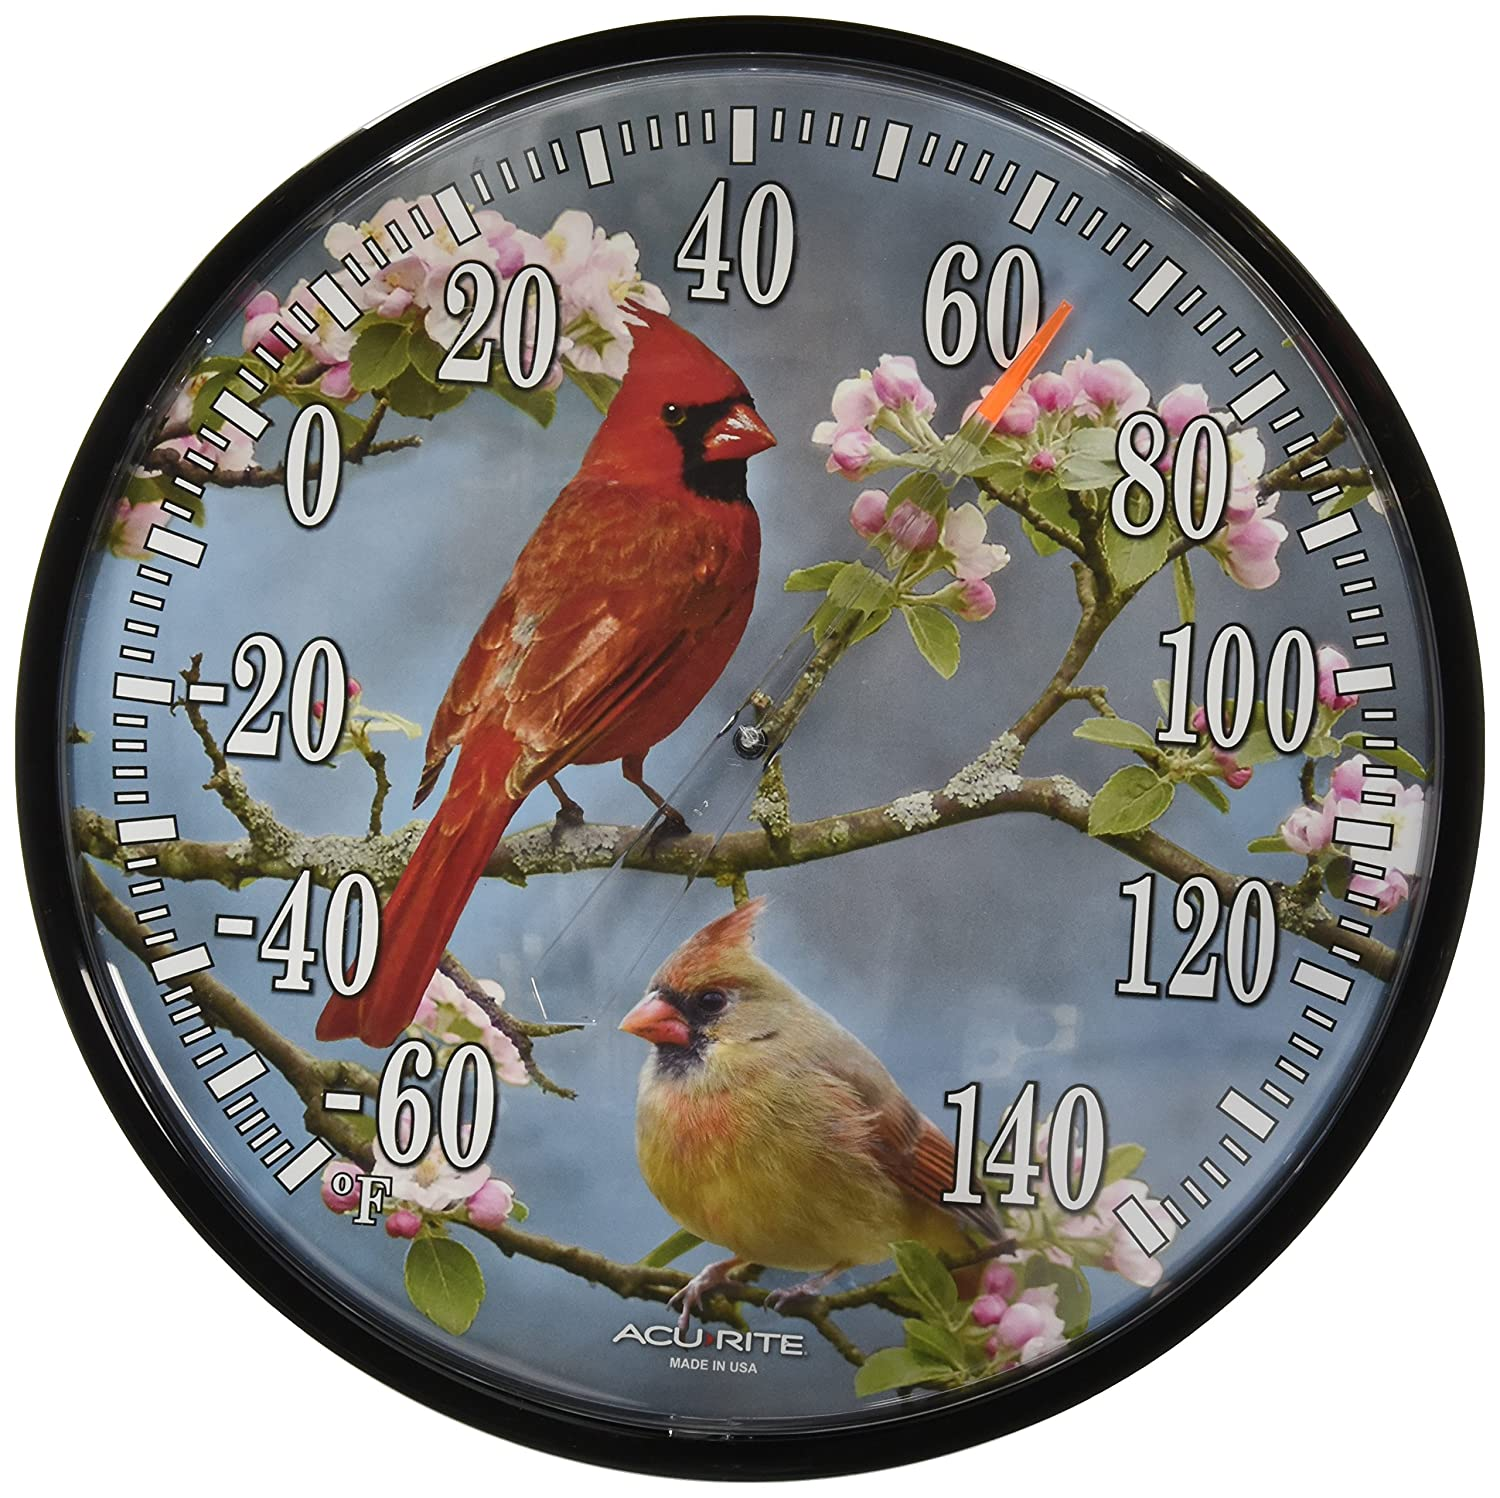 AcuRite 01597 12.5-Inch Wall Thermometer, Cardinals Chaney Instruments